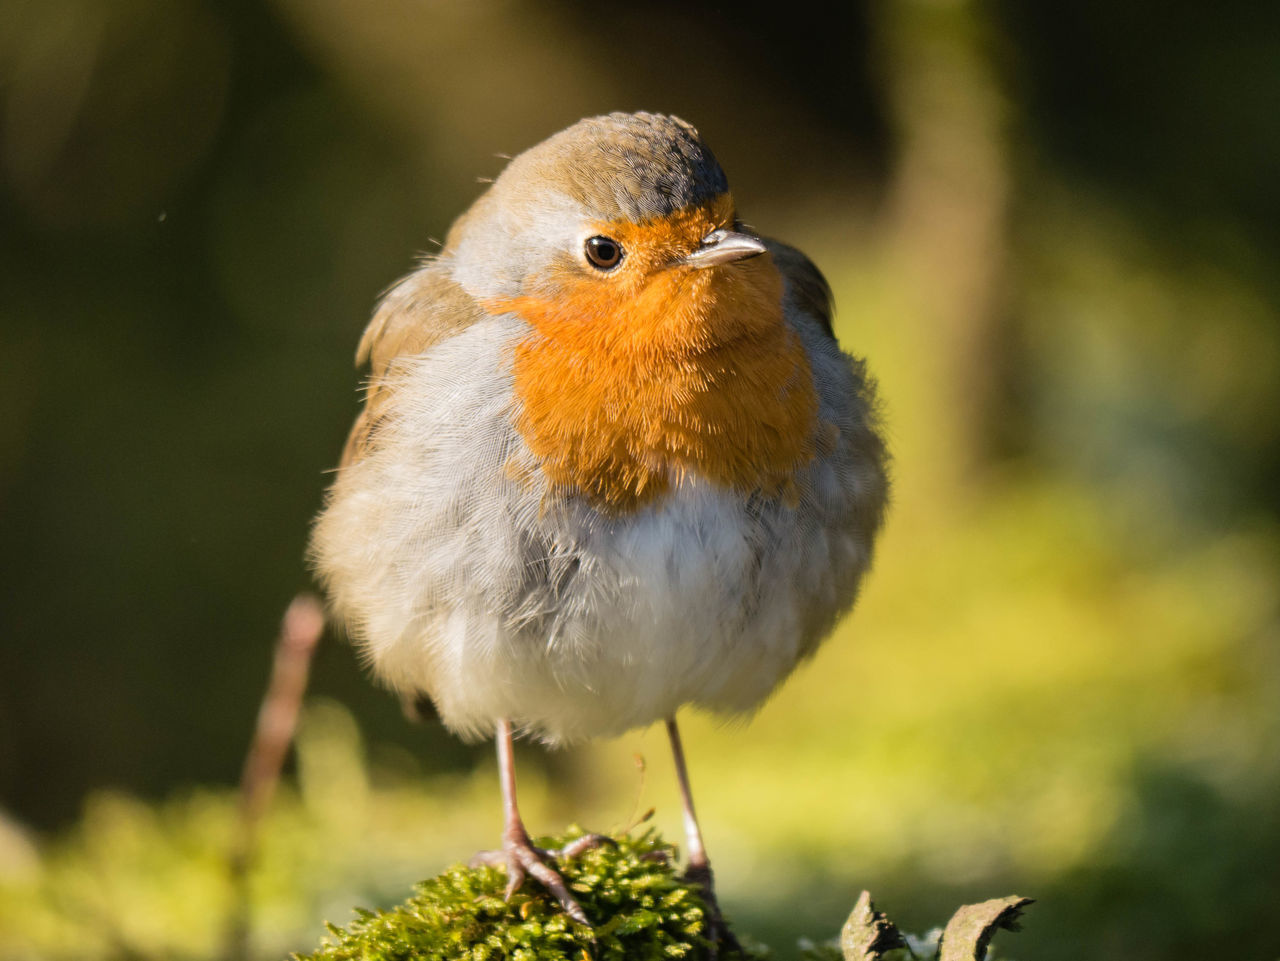 Animal Themes Animal Wildlife Animals In The Wild Bird Close-up Day Focus On Foreground Nature No People One Animal Outdoors Perching Robin Rotkehlchen